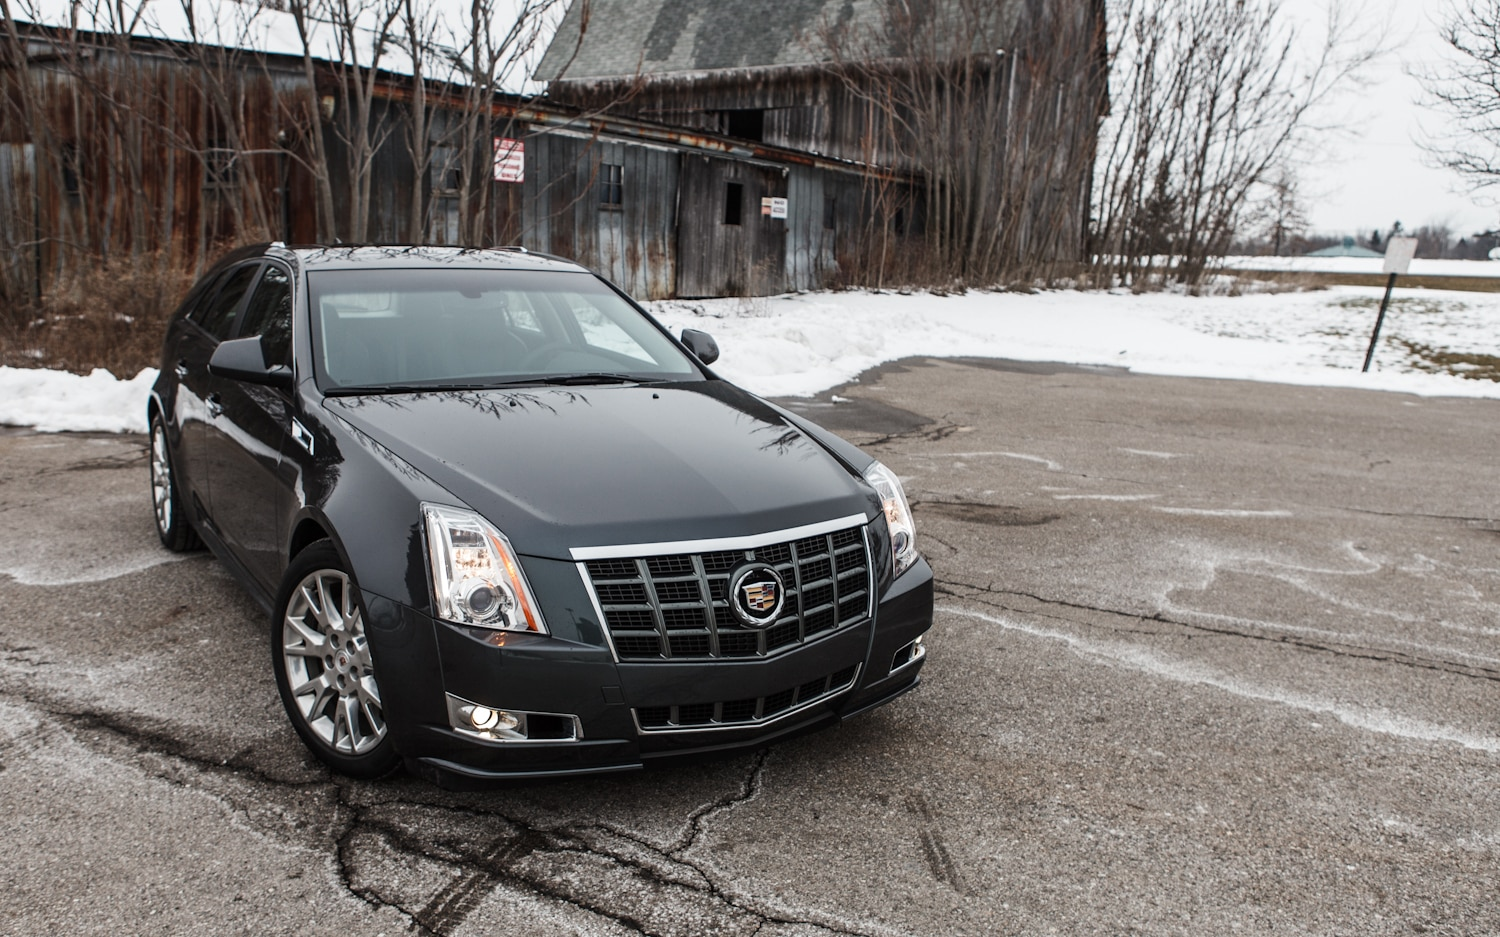 review ats blogspot tirekicker cadillac new awd car